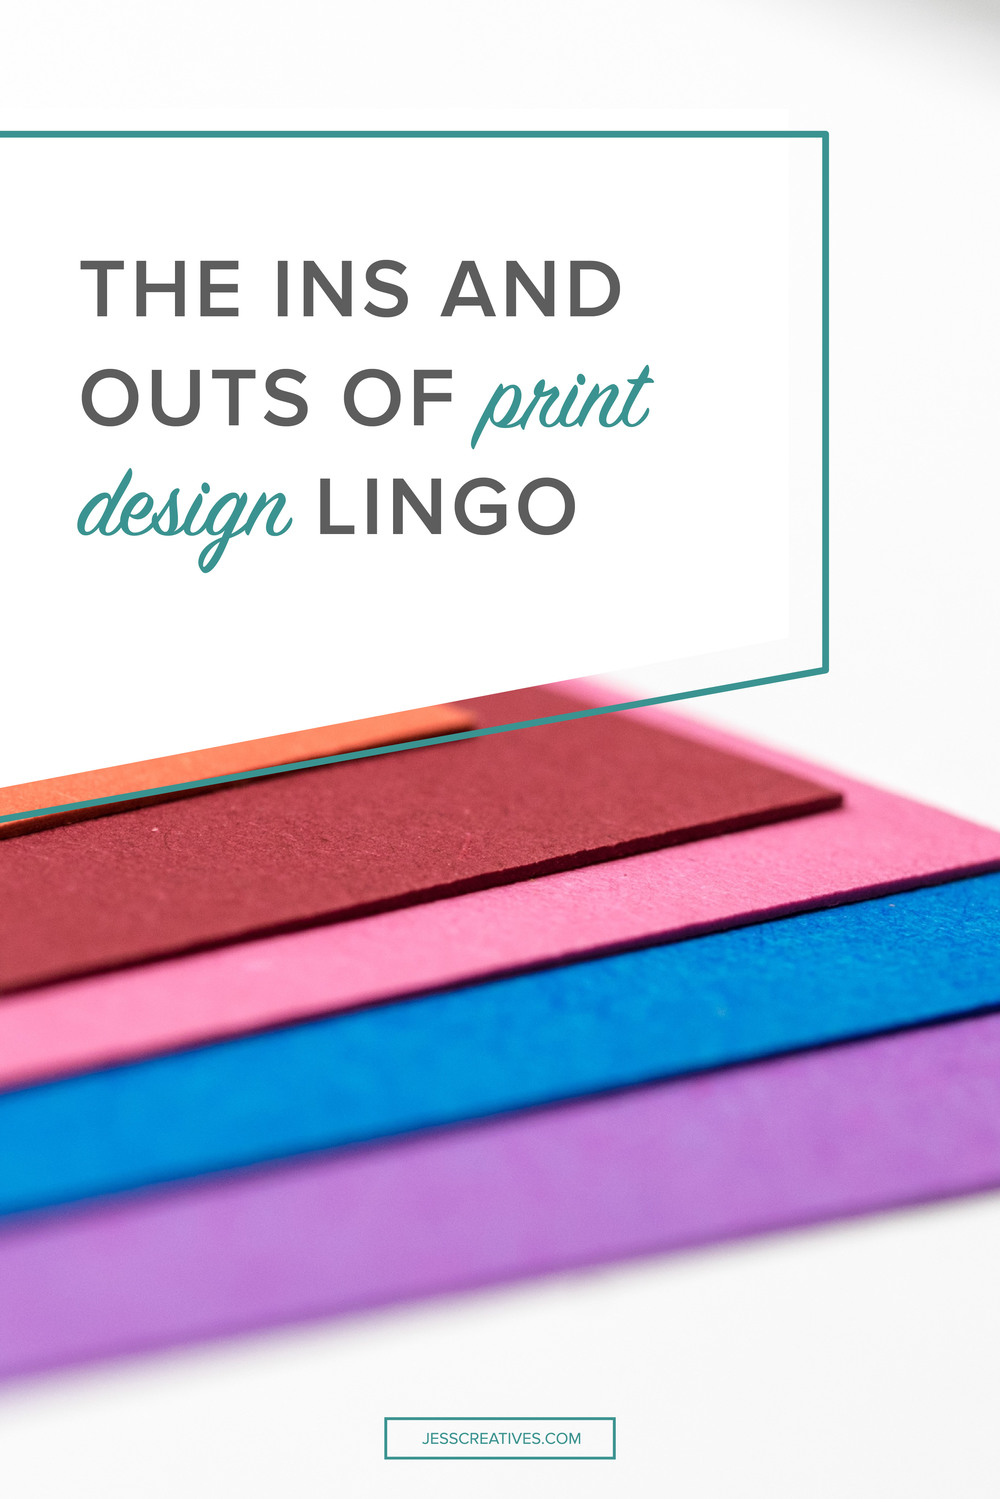 The ins and outs of print design lingo